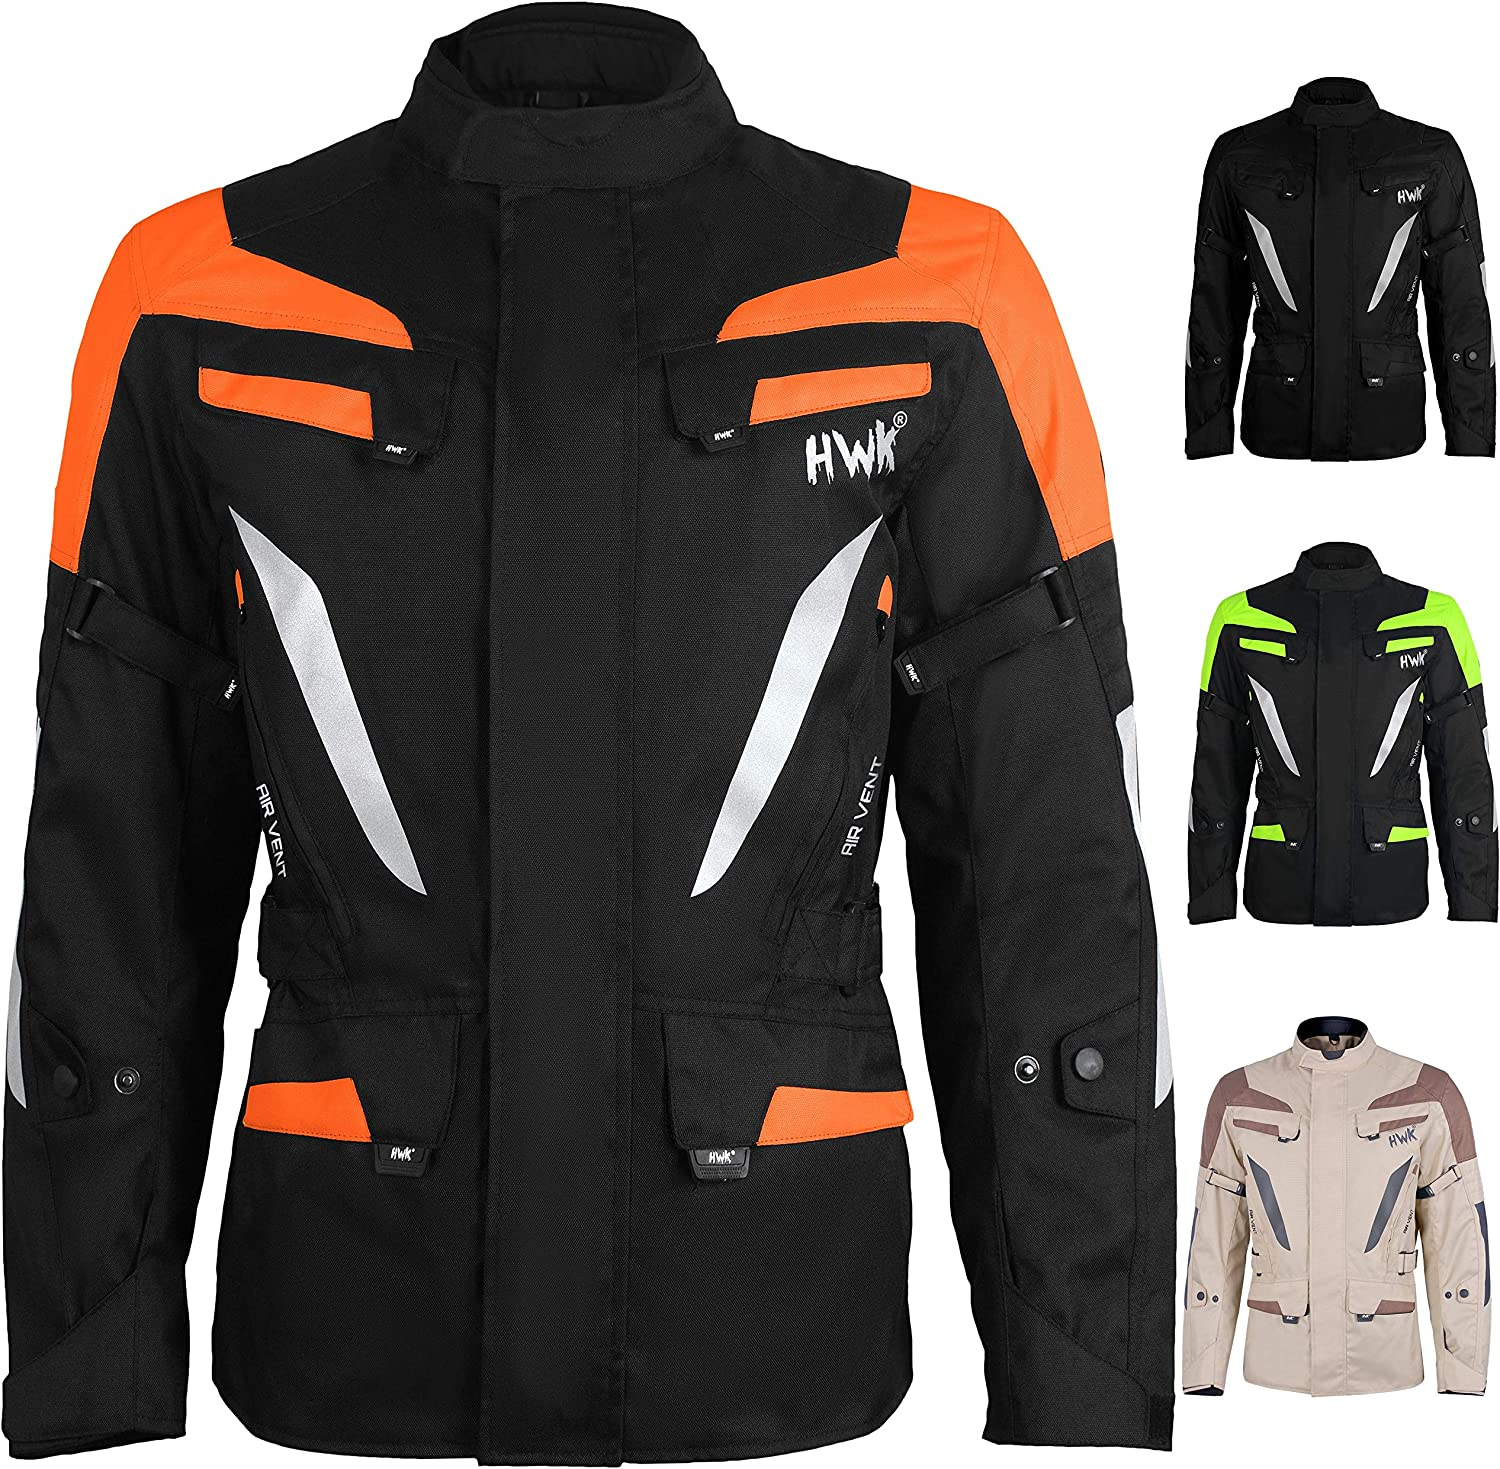 Adventure//Touring Mens Motorcycle Jacket Adv Dual Sport Racing CE Armored Waterproof Windproof Jackets All-Weather Neon-Orange, L